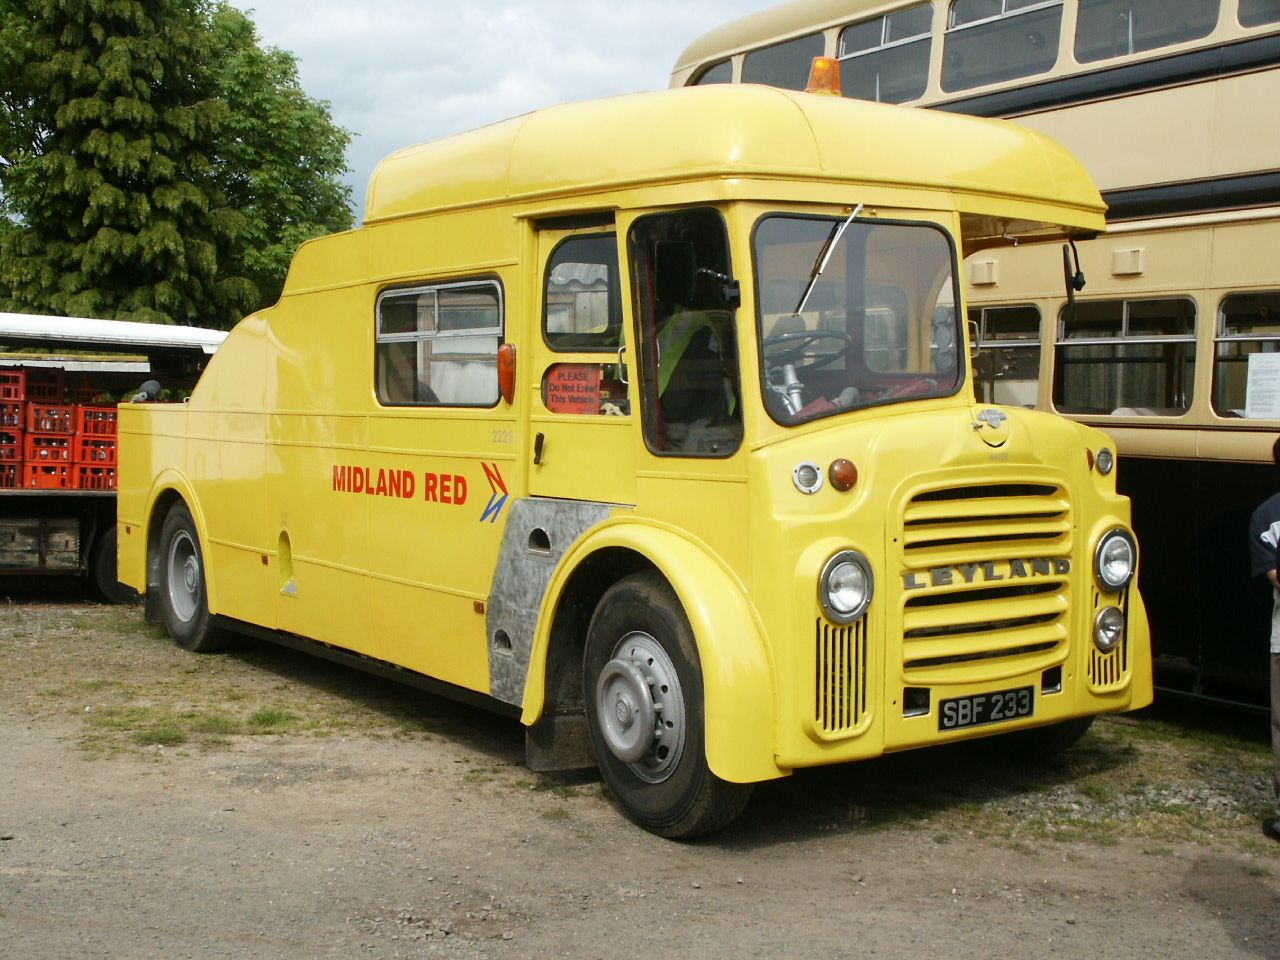 File:Preserved Midland Red towing vehicle 2225 (SBF 233), BAMMOT Wythall,